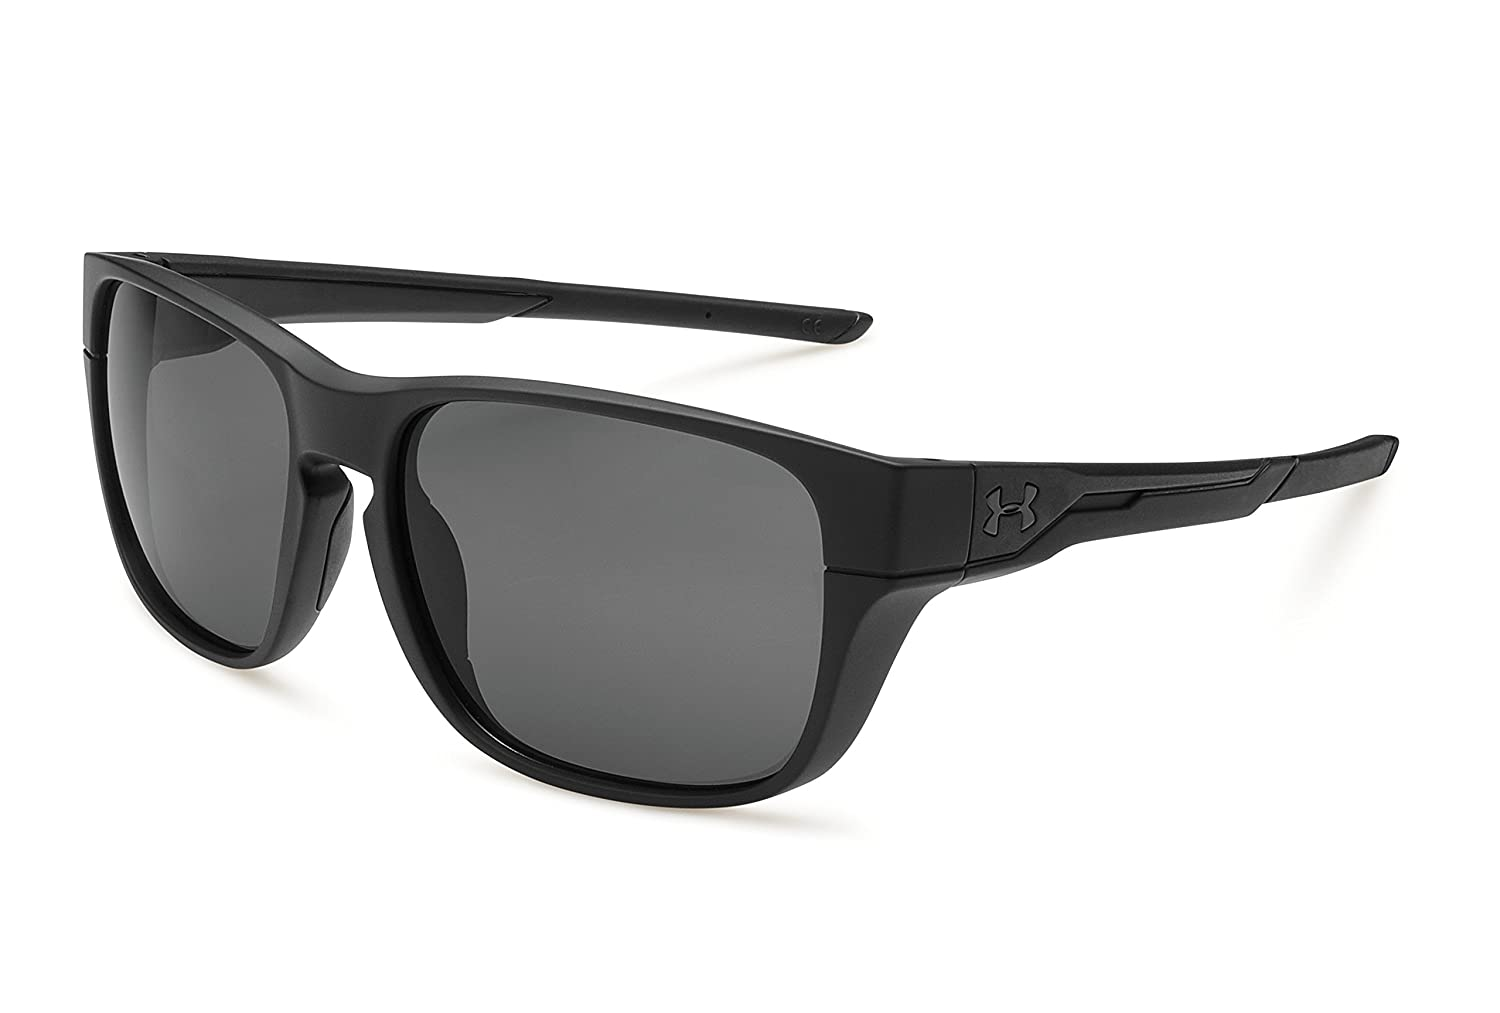 4815bde487 Amazon.com  Under Armour UA Pulse Square Sunglasses